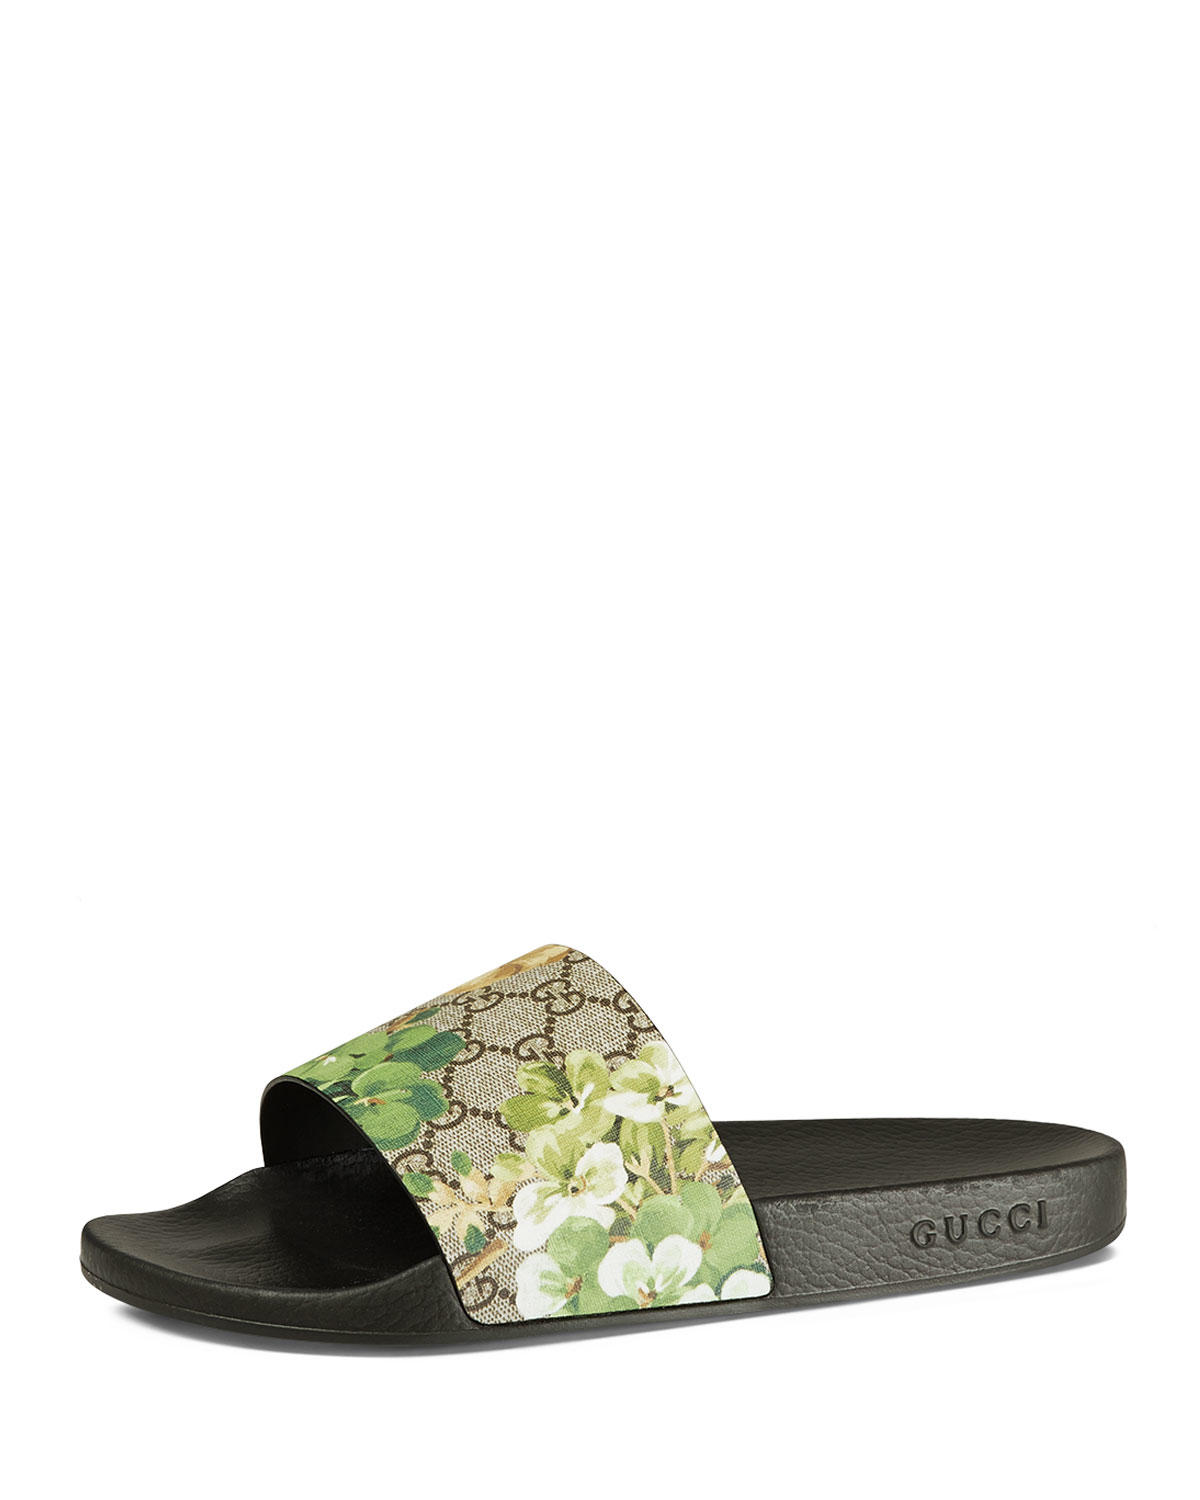 cb4254598 Lyst - Gucci Pursuit Blooms Printed Sandal